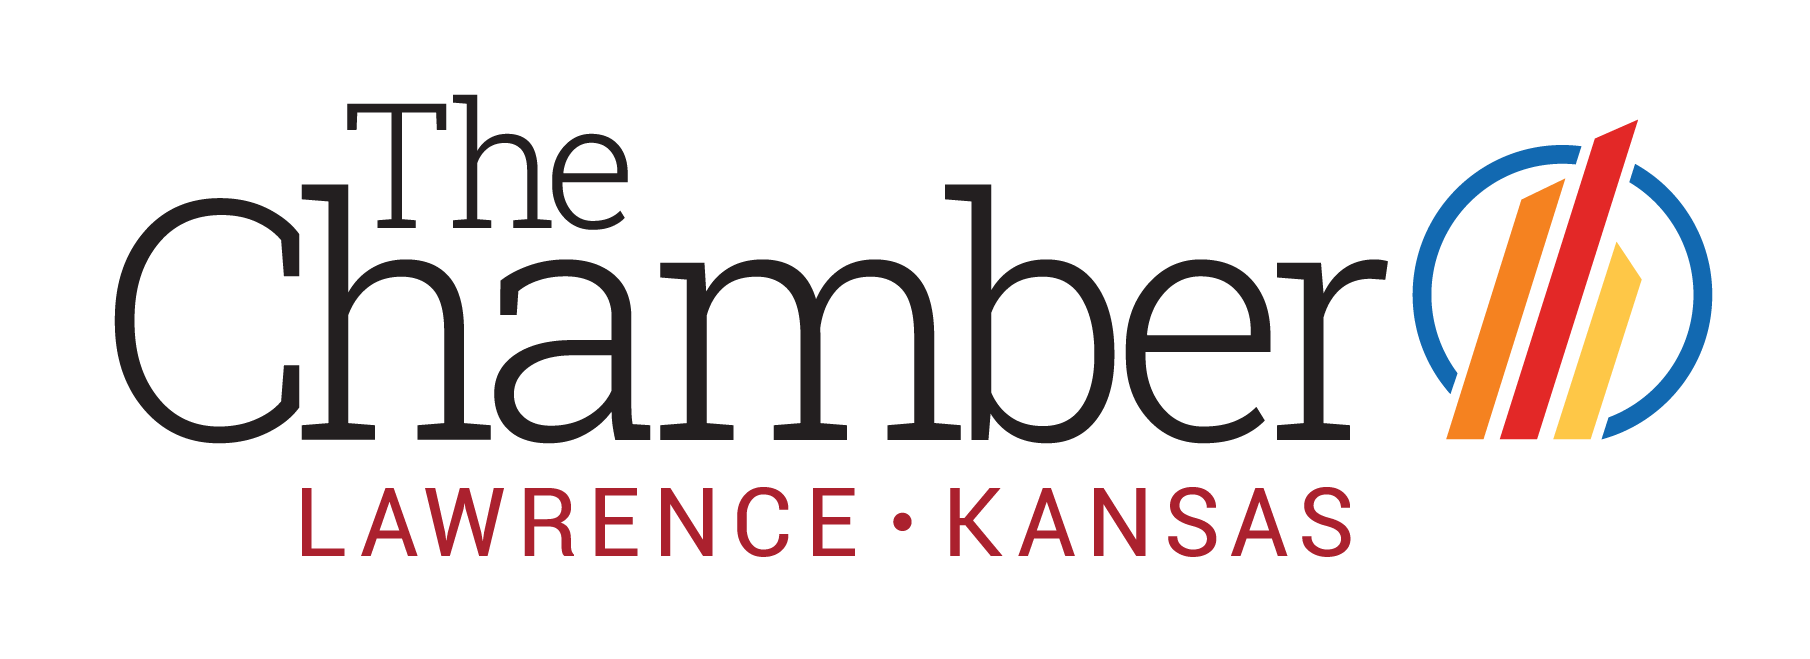 Lawrence Chamber of Commerce